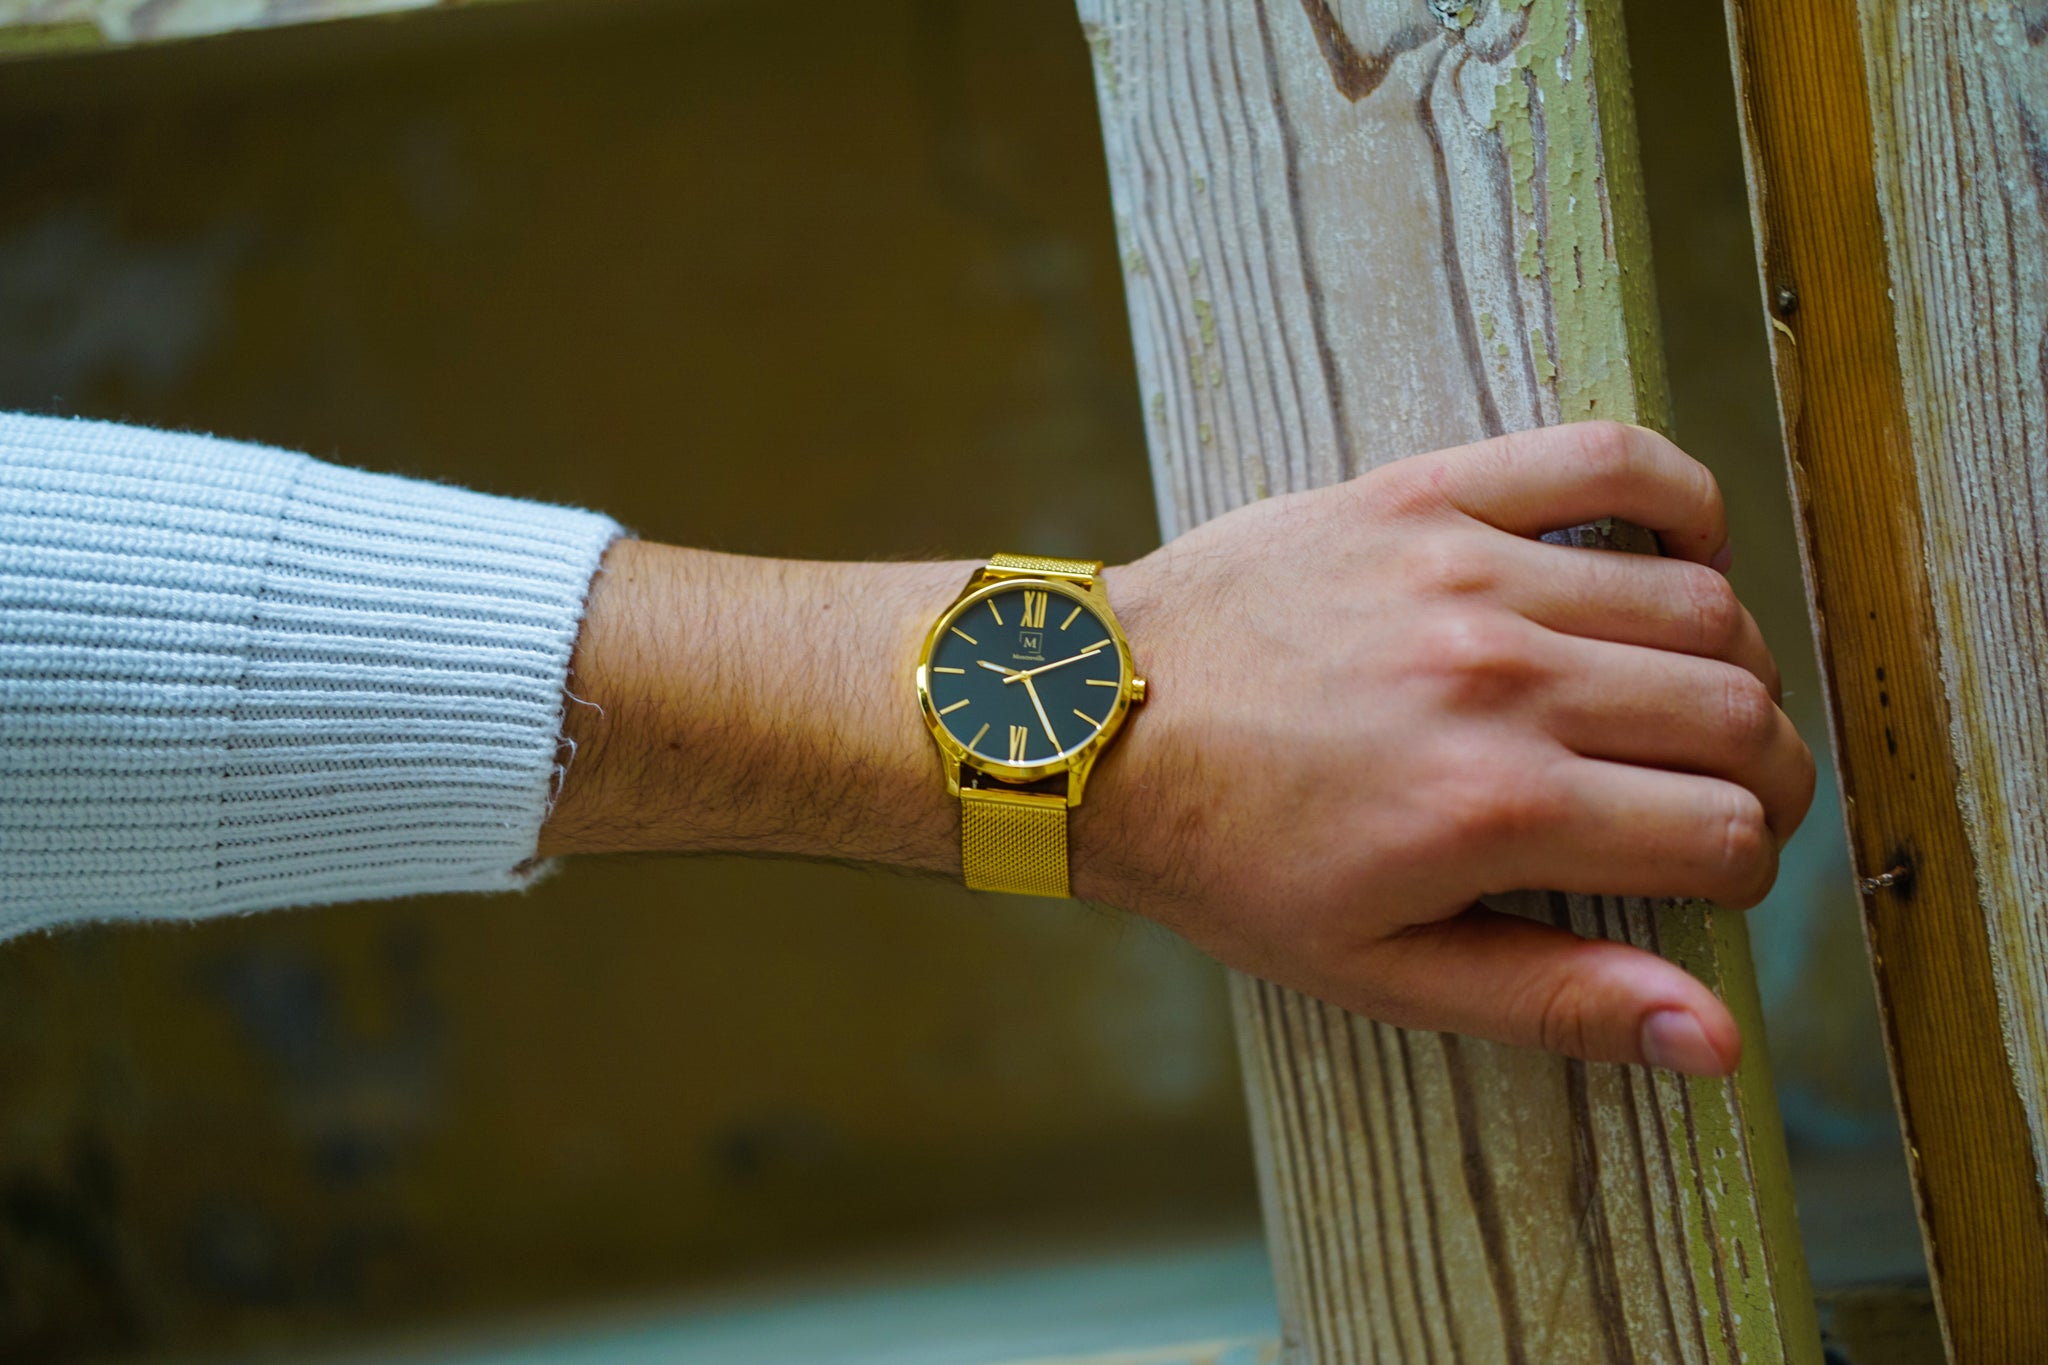 An image of a gold watch from the brand Montreville. The watch is being worn by a man. On the picture you can only see the arm and hand of the man. The watch is called Luxor and has golden numerals. The design is elegant and stylish.